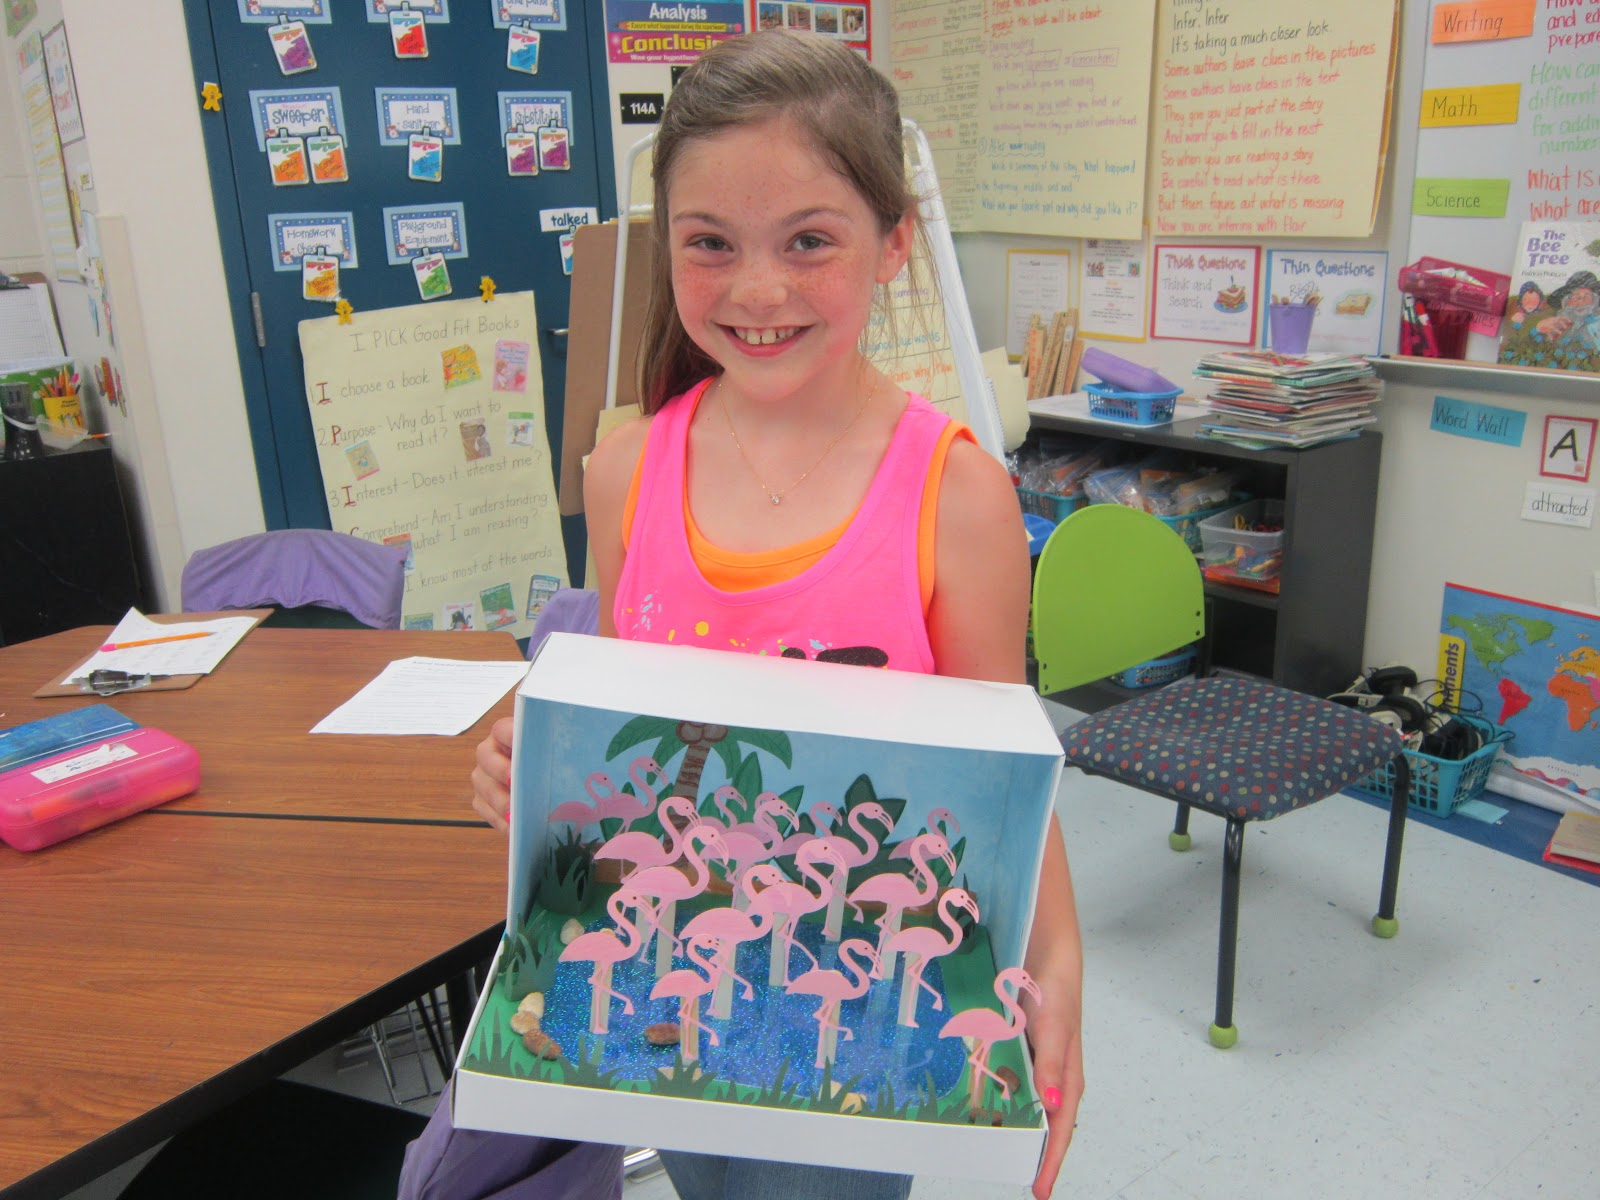 Kids Diorama With Details: Mrs. Pacciano's Post: Look At These Habitat Dioramas